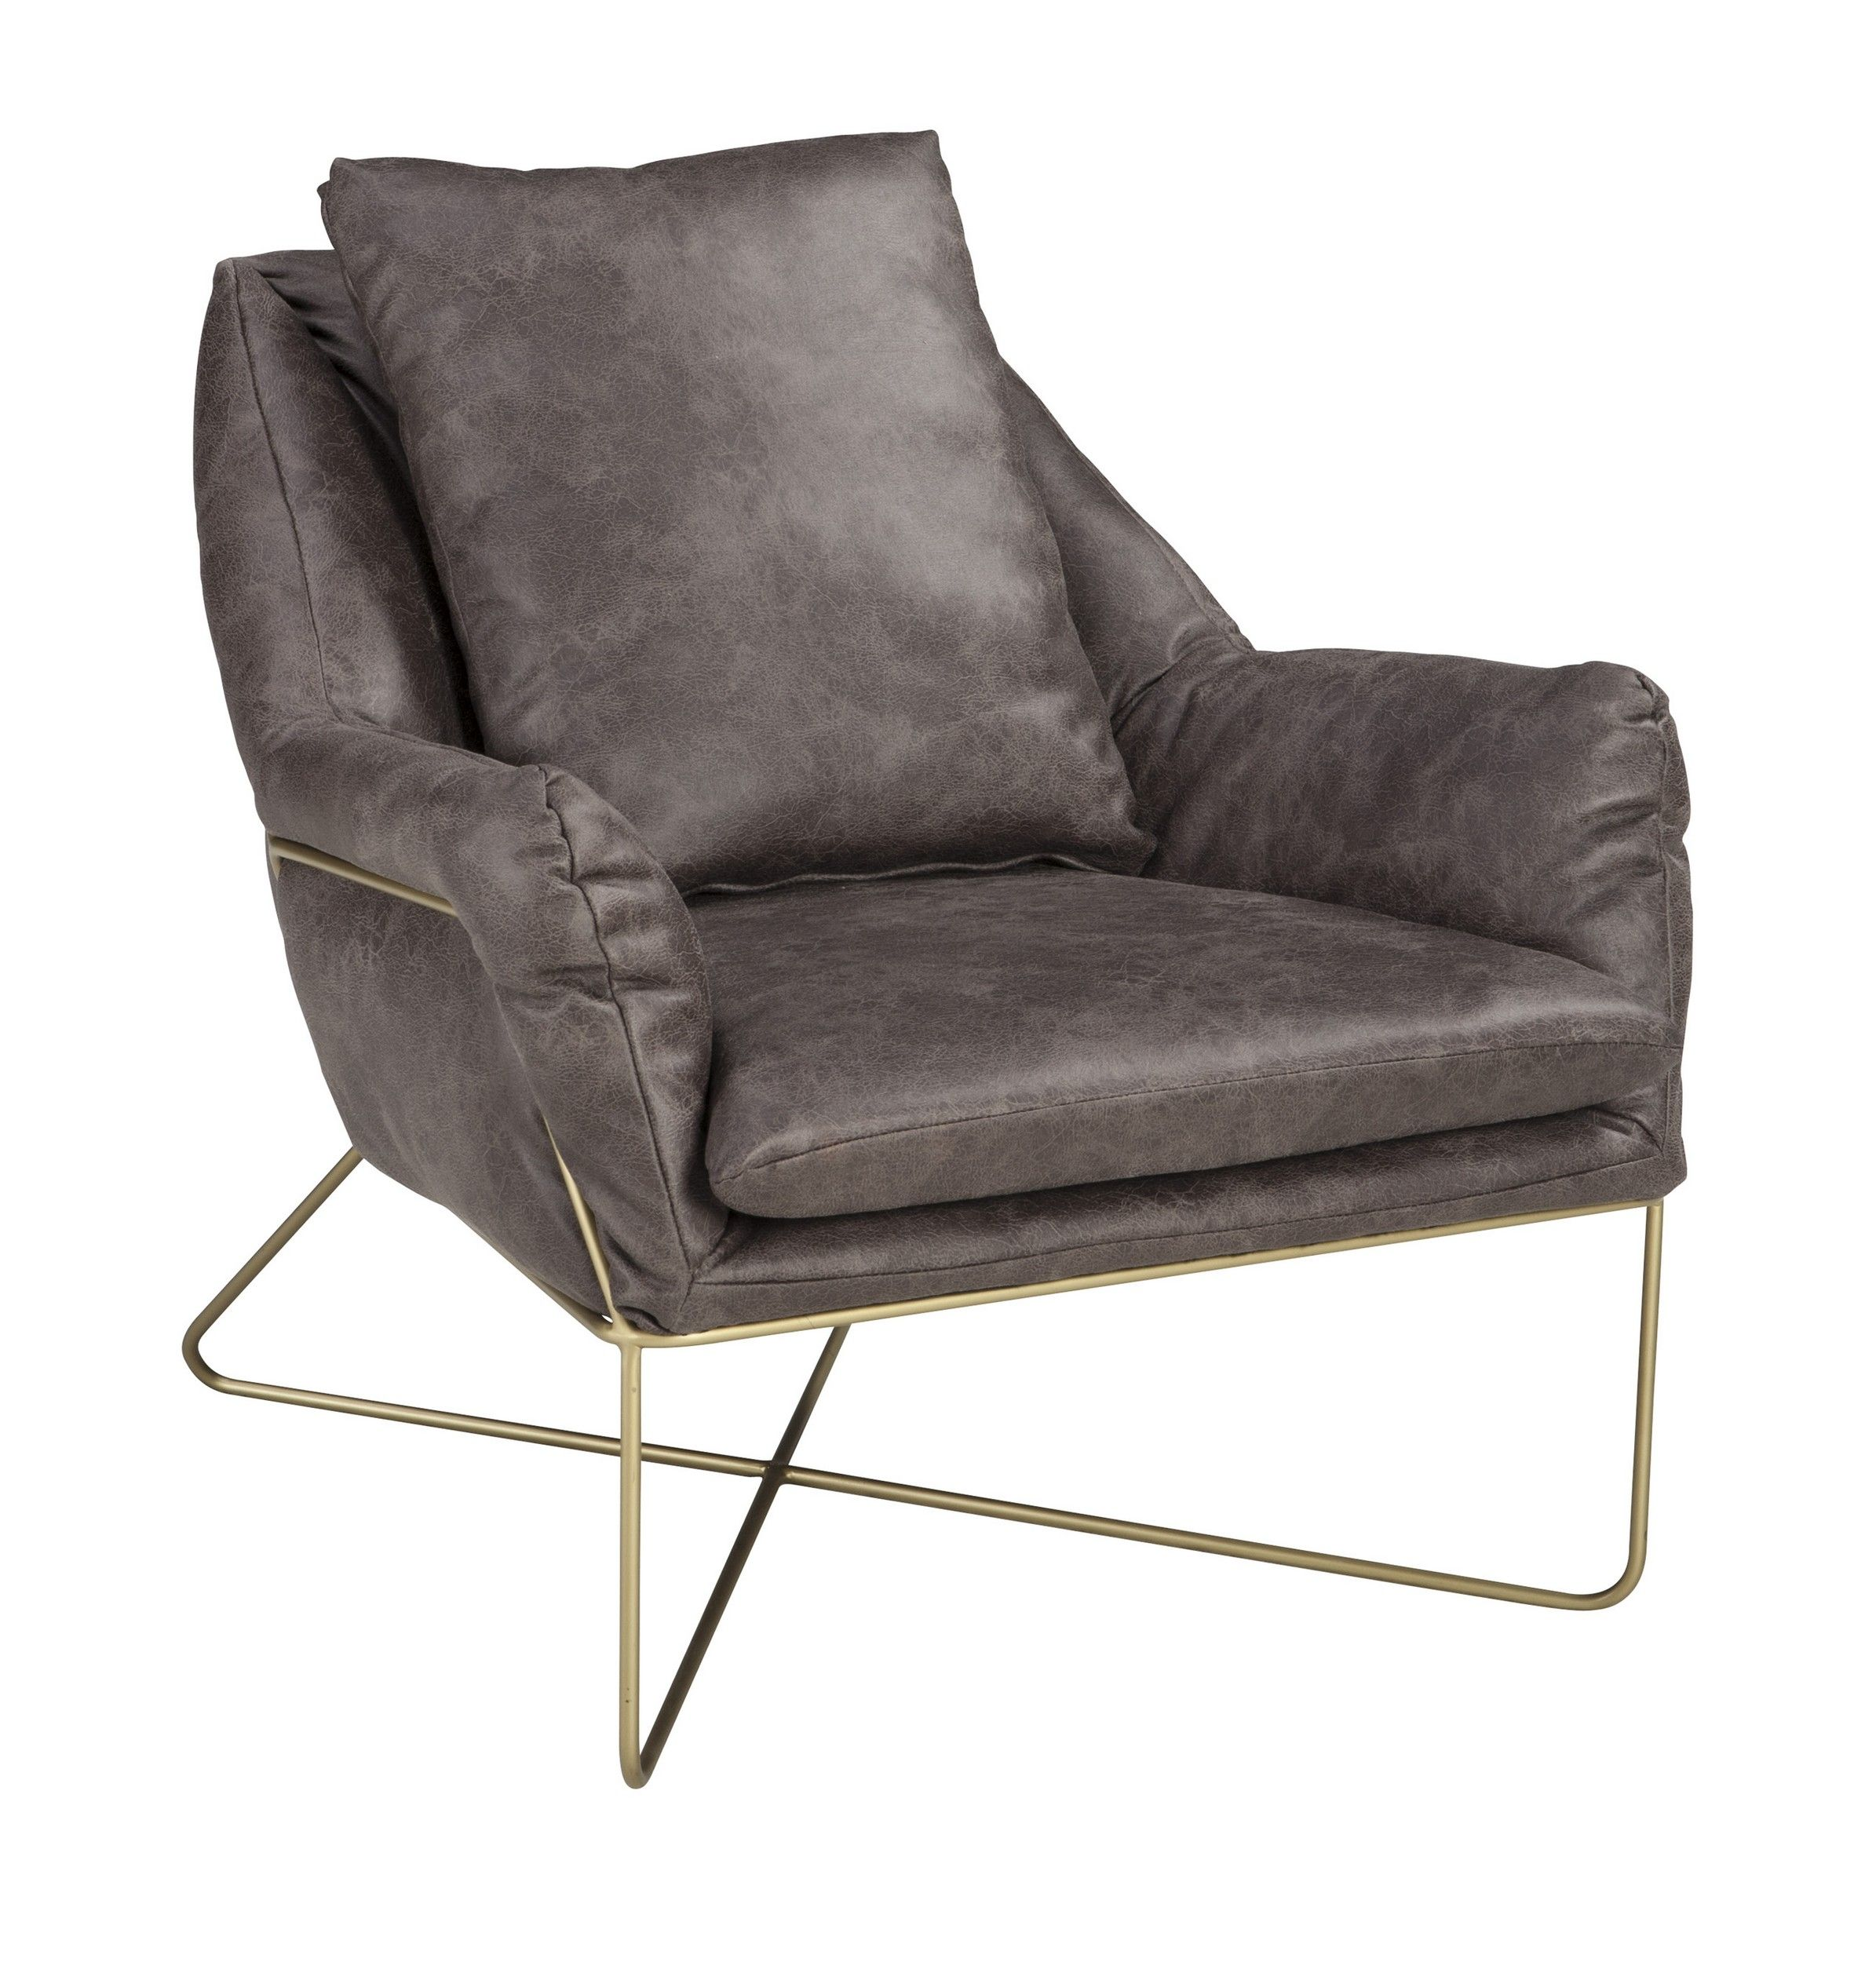 Signature Design By Ashley Crosshaven Dark Gray Accent Chair A3000040 Goedekers Com Accent Chairs Grey Accent Chair Ashley Furniture